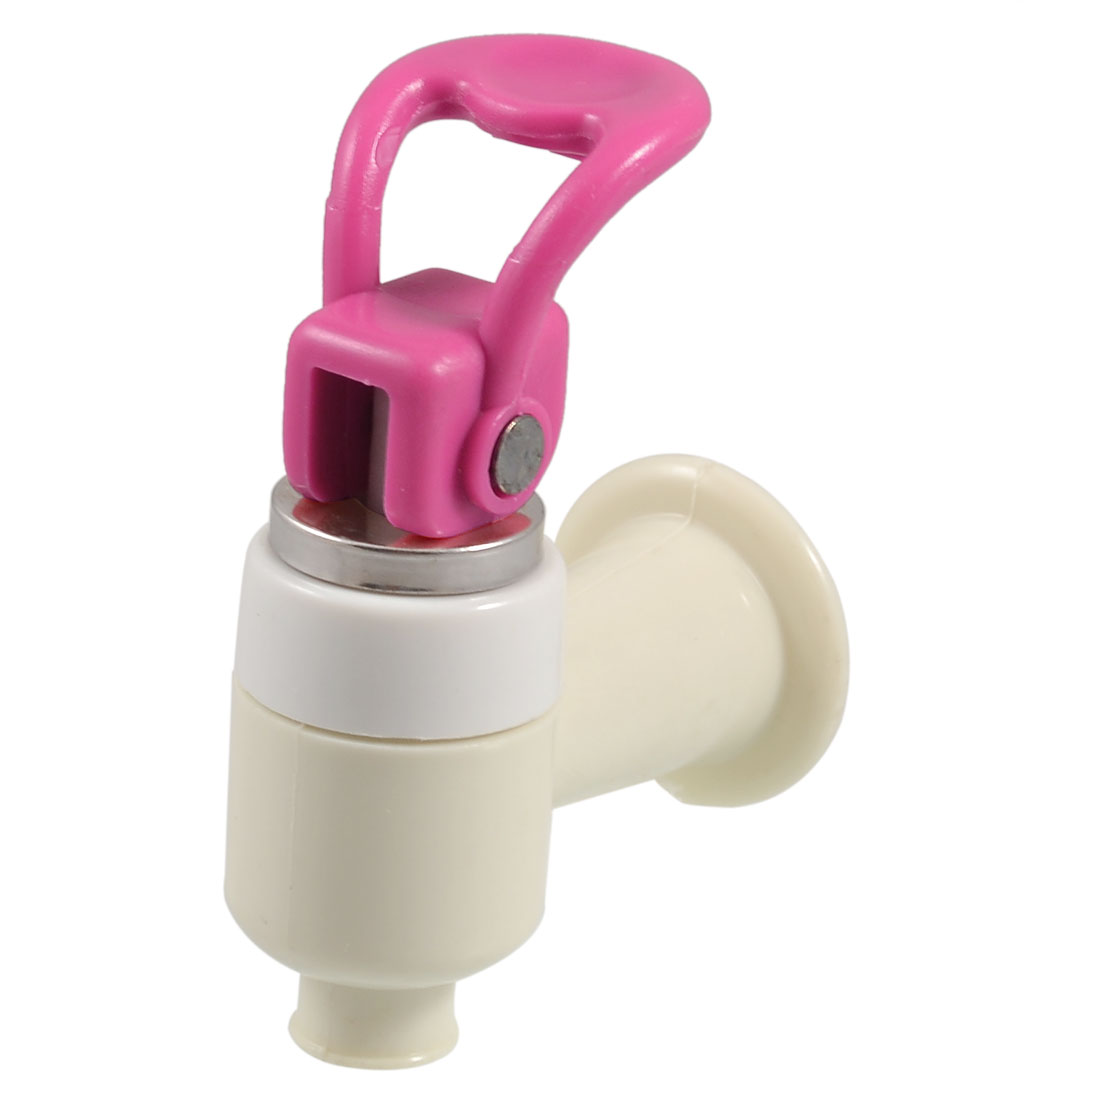 Water Dispenser Round Outlet Plastic Tap Faucet Fuchsia Ivory Replacement